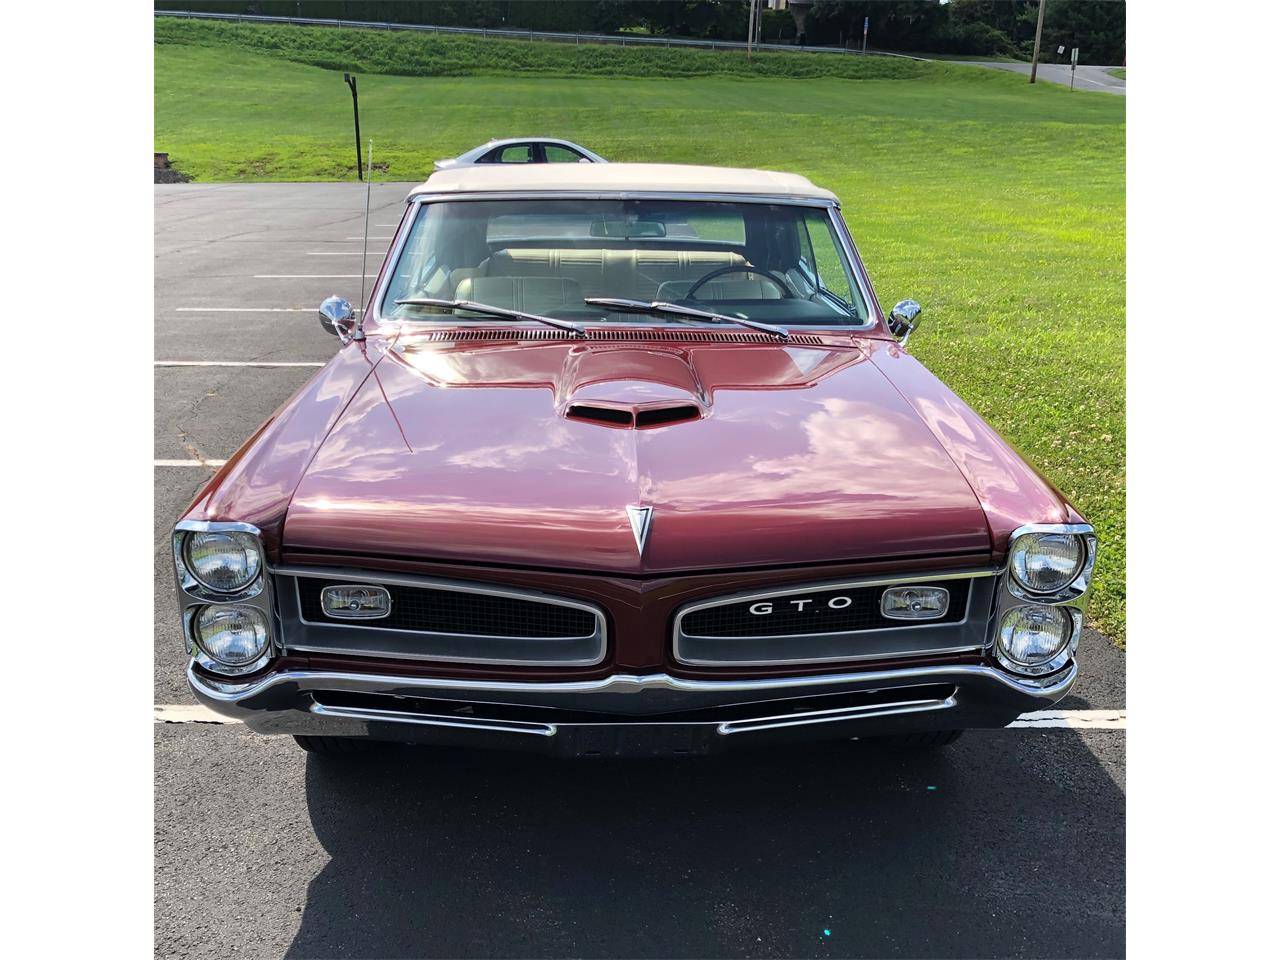 Large Picture of '66 GTO located in Bechtelsville Pennsylvania - $52,500.00 Offered by a Private Seller - QKAF